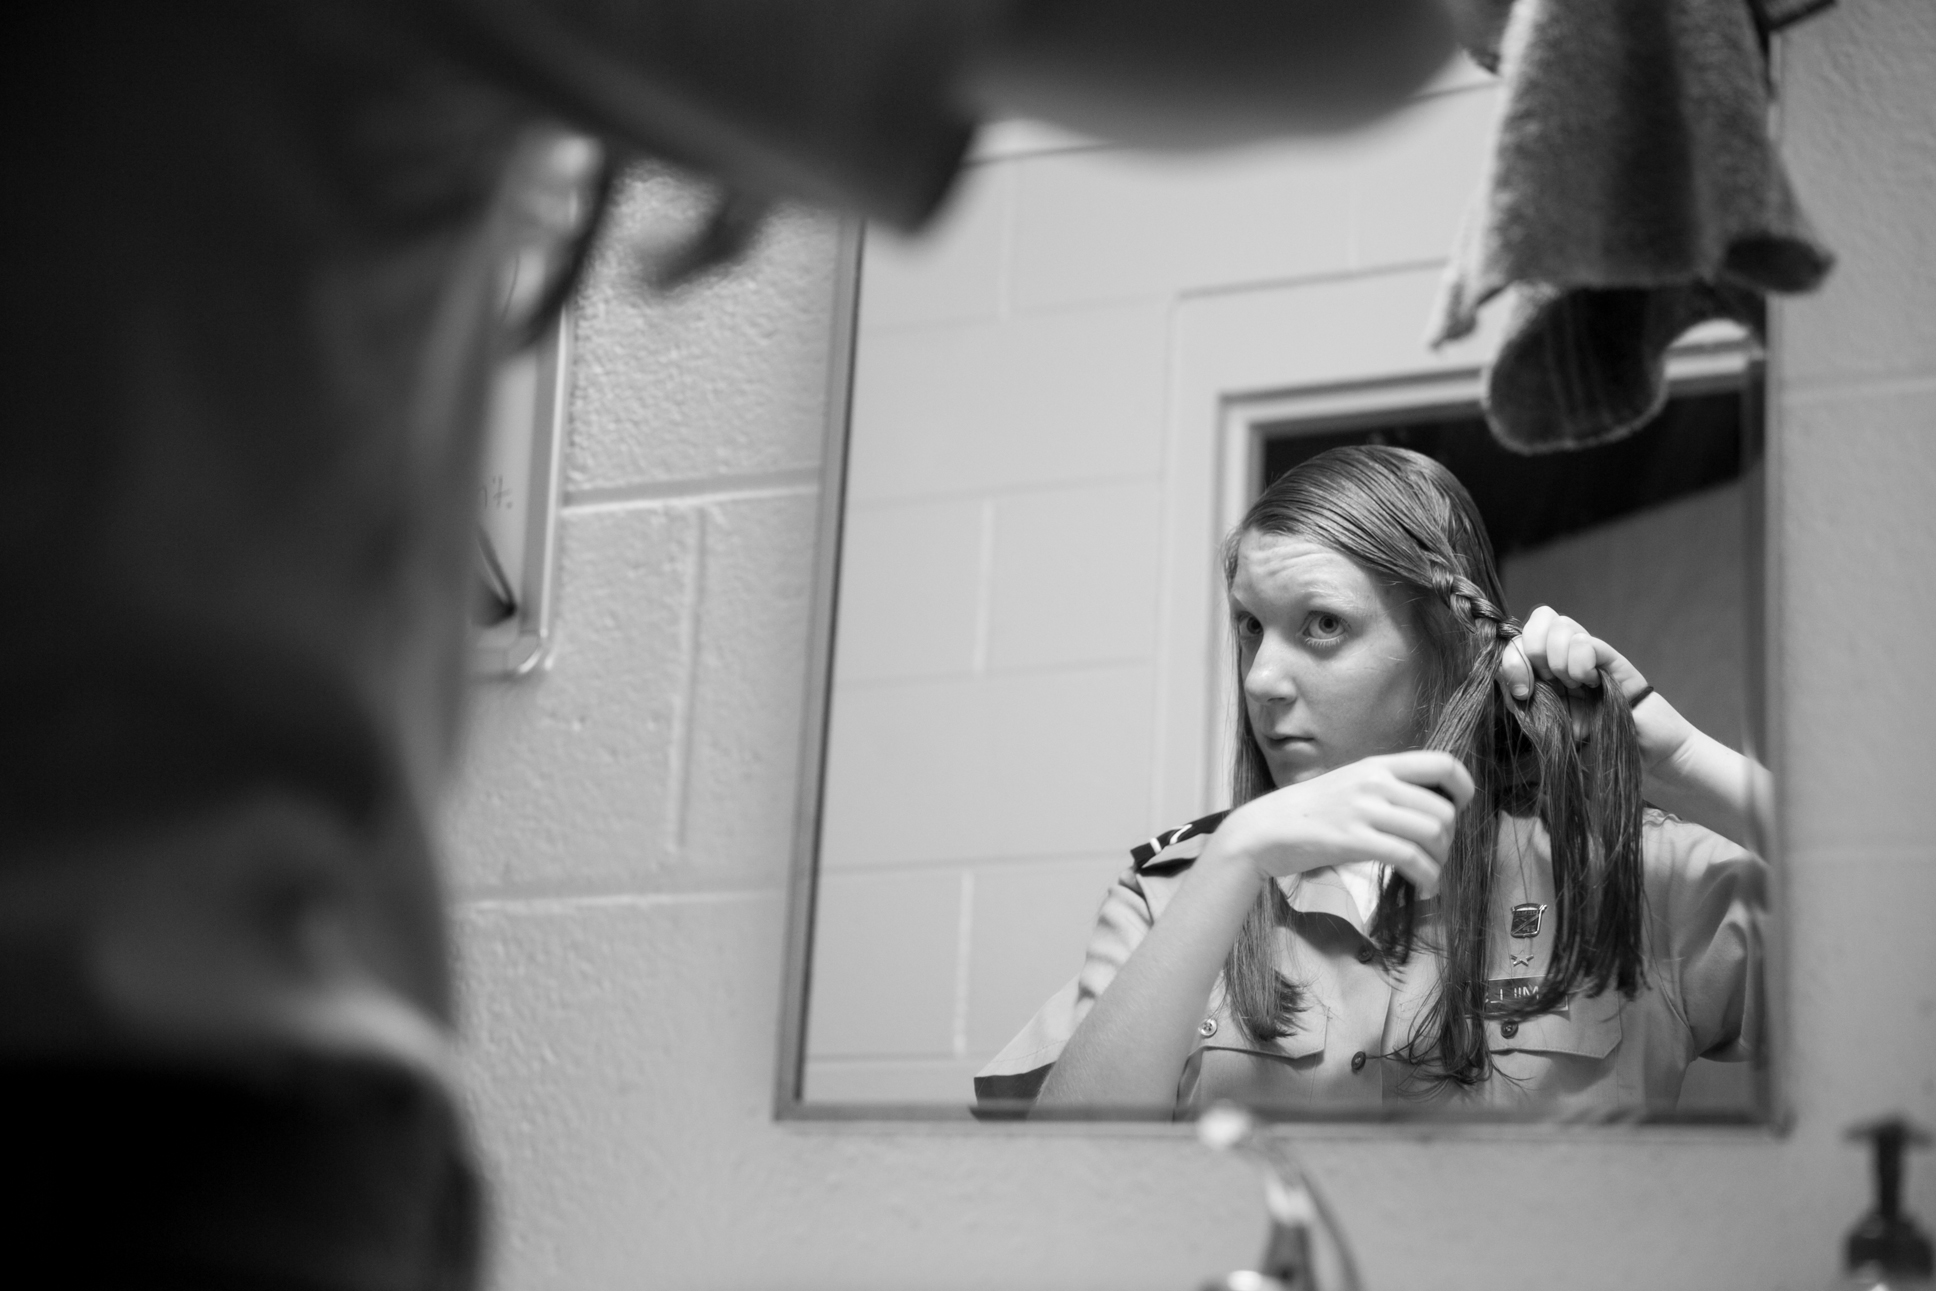 PVT Mills braids her hair before morning formation. The male cadets are required to keep their hair cut short and neat. While the girls are not required to cut their hair, they must keep it structured and pulled back at all times except while in the dorms.